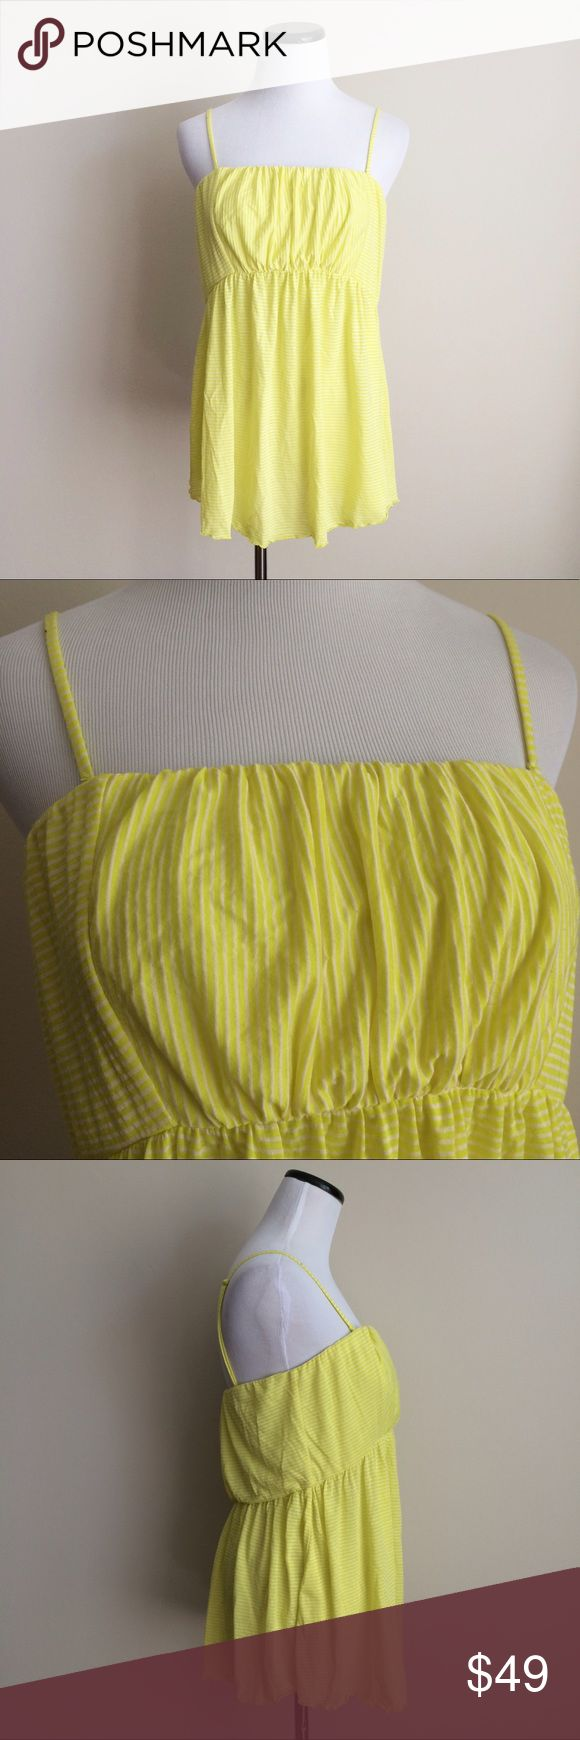 "FREE PEOPLE Neon yellow striped Tank Top strapless Neon yellow and white striped Tank Top with removable straps to become a Strapless Top. Flowy fit. Size large. Adjustable straps. Soft modal and polyester. Length 21.5"", not including straps. Chest 16"" before stretched. Thick band at top to hold you up. Free People Tops Tank Tops"